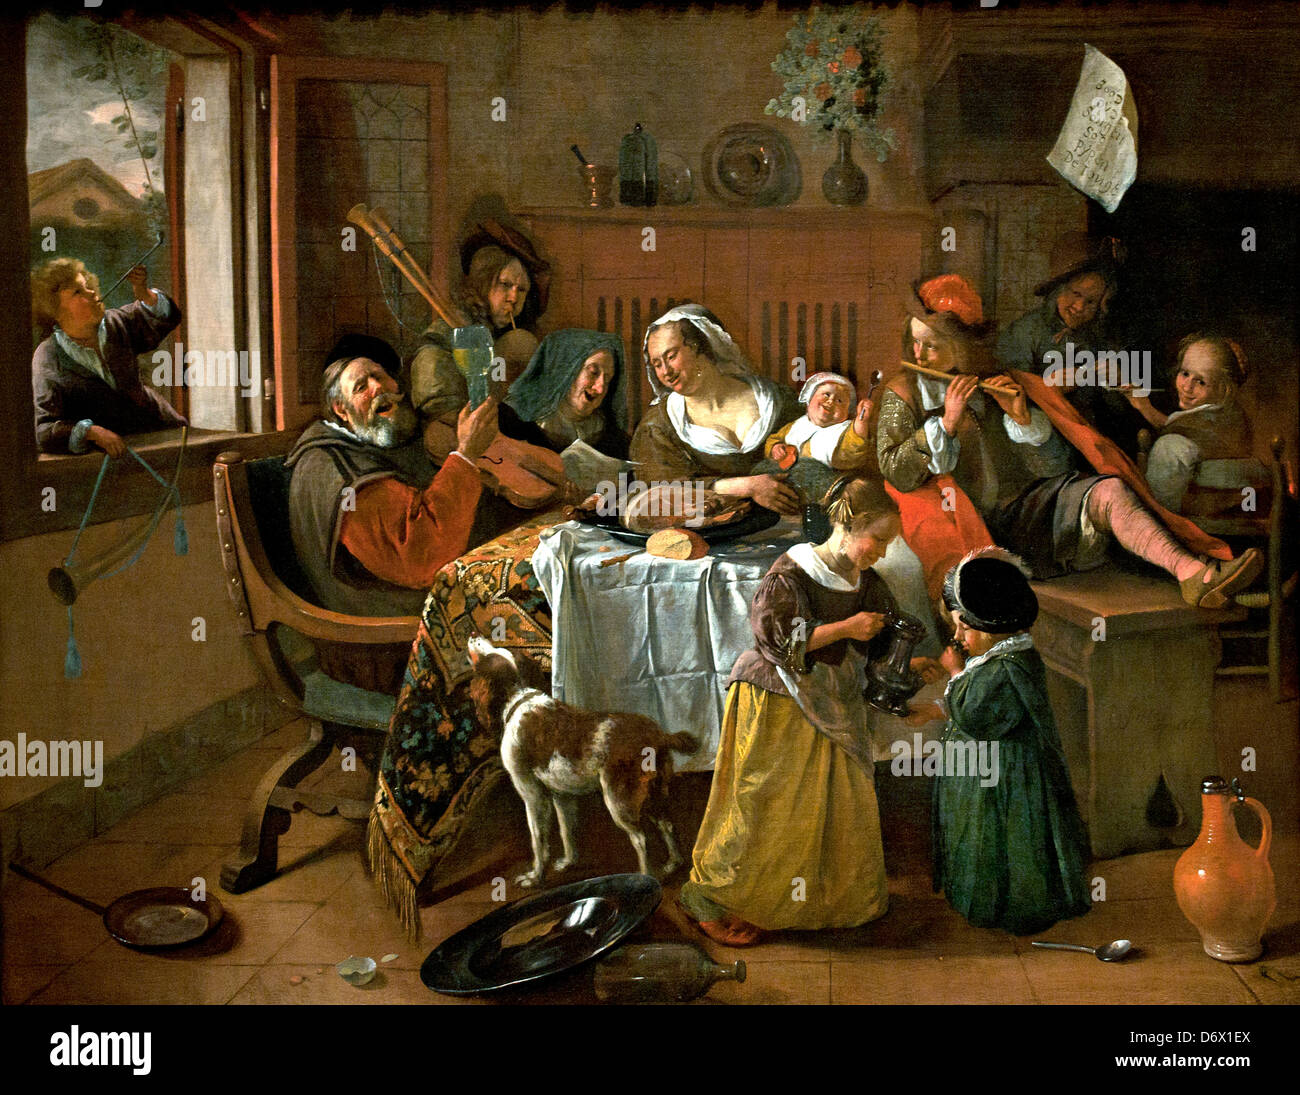 La famiglia allegro 1668 Jan Havickszoon Steen 1626 - 1679 Paesi Bassi olandese Holland Immagini Stock